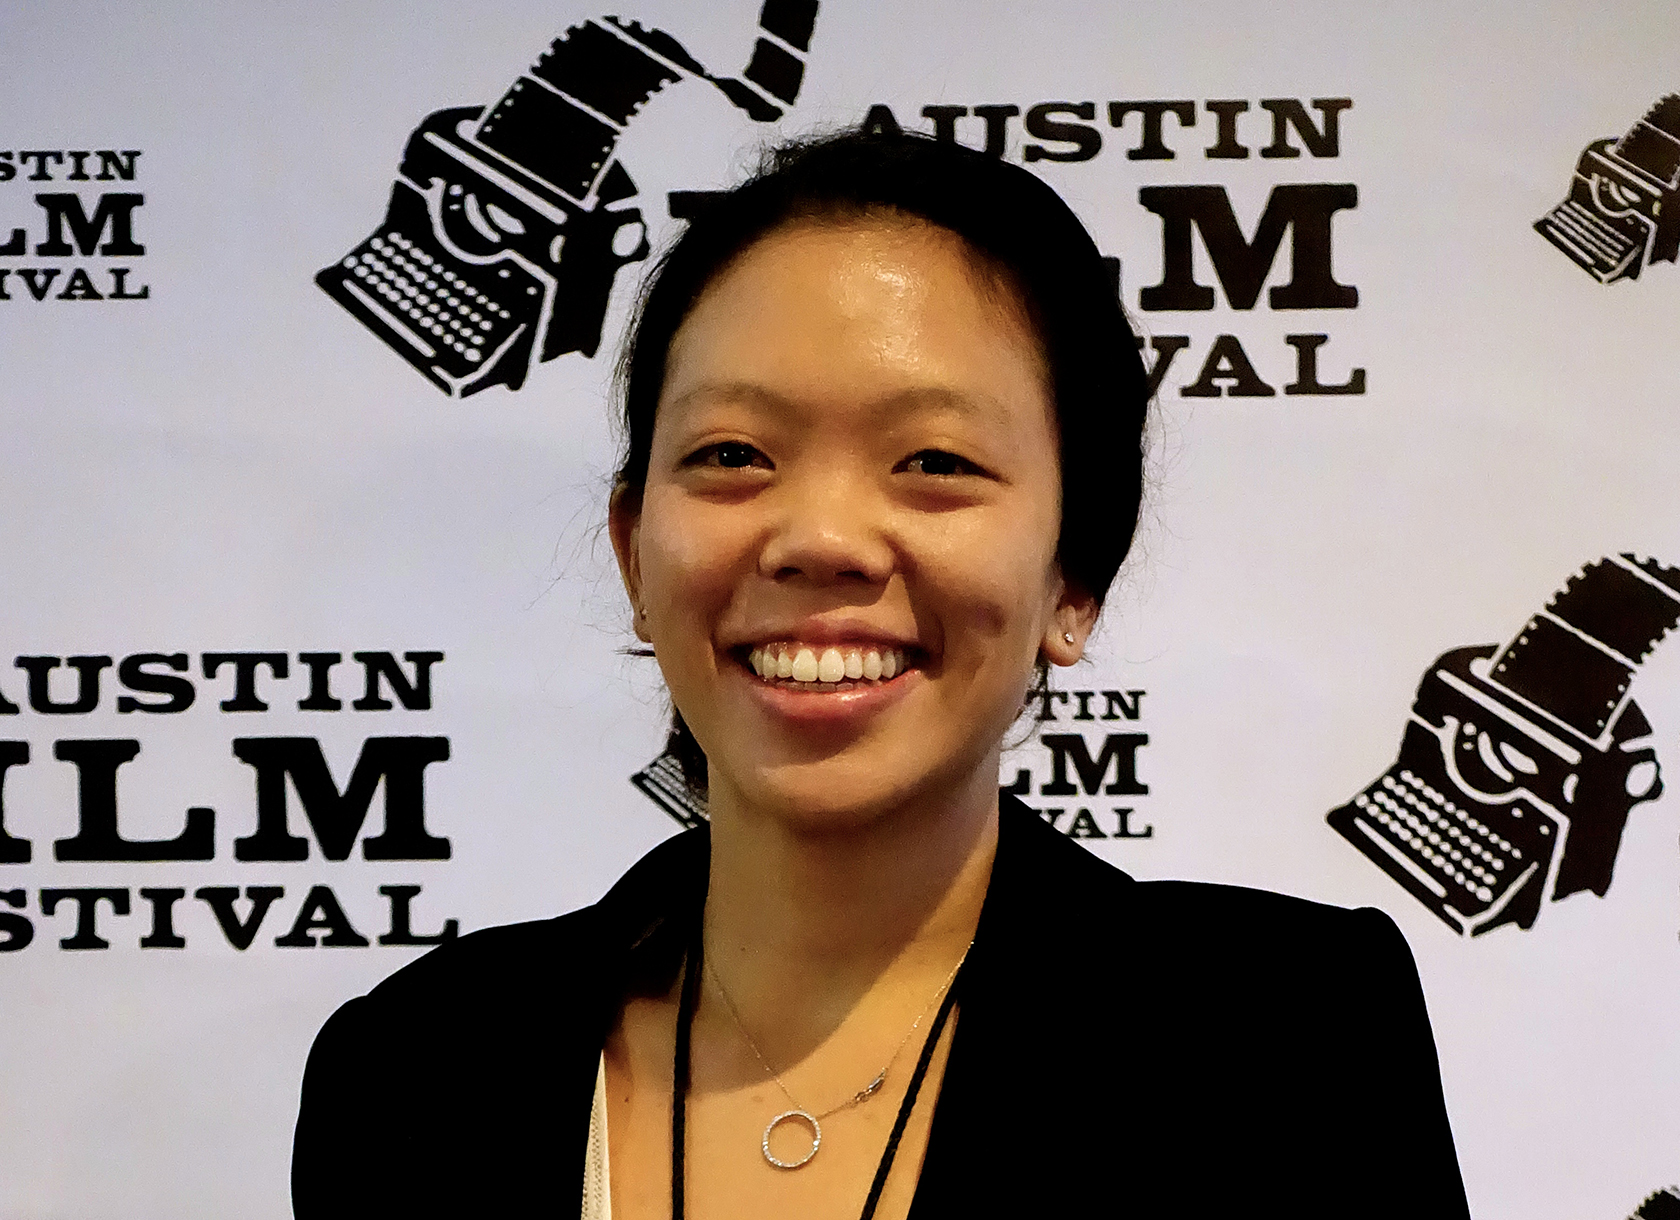 A headshot of a smiling Asian woman wearing a black blazer at a film festival.